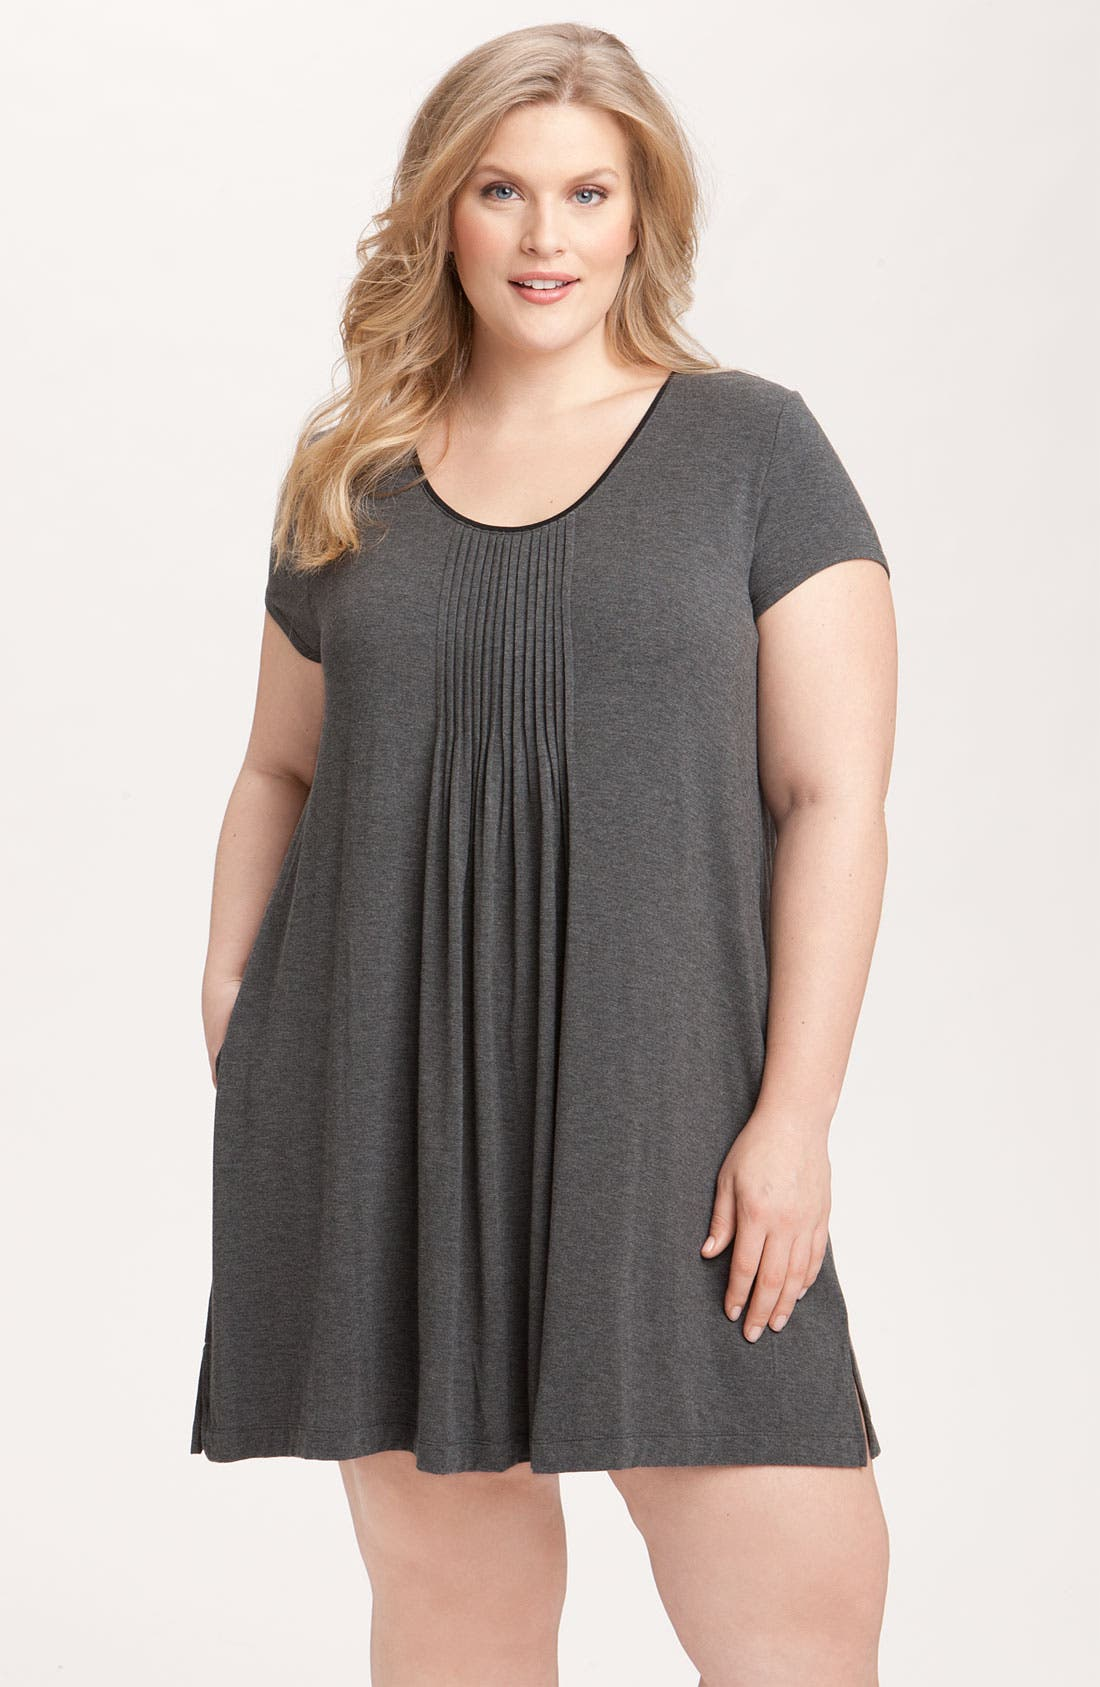 Alternate Image 1 Selected - DKNY '7 Easy Pieces' Pintuck Sleep Shirt (Plus Size)